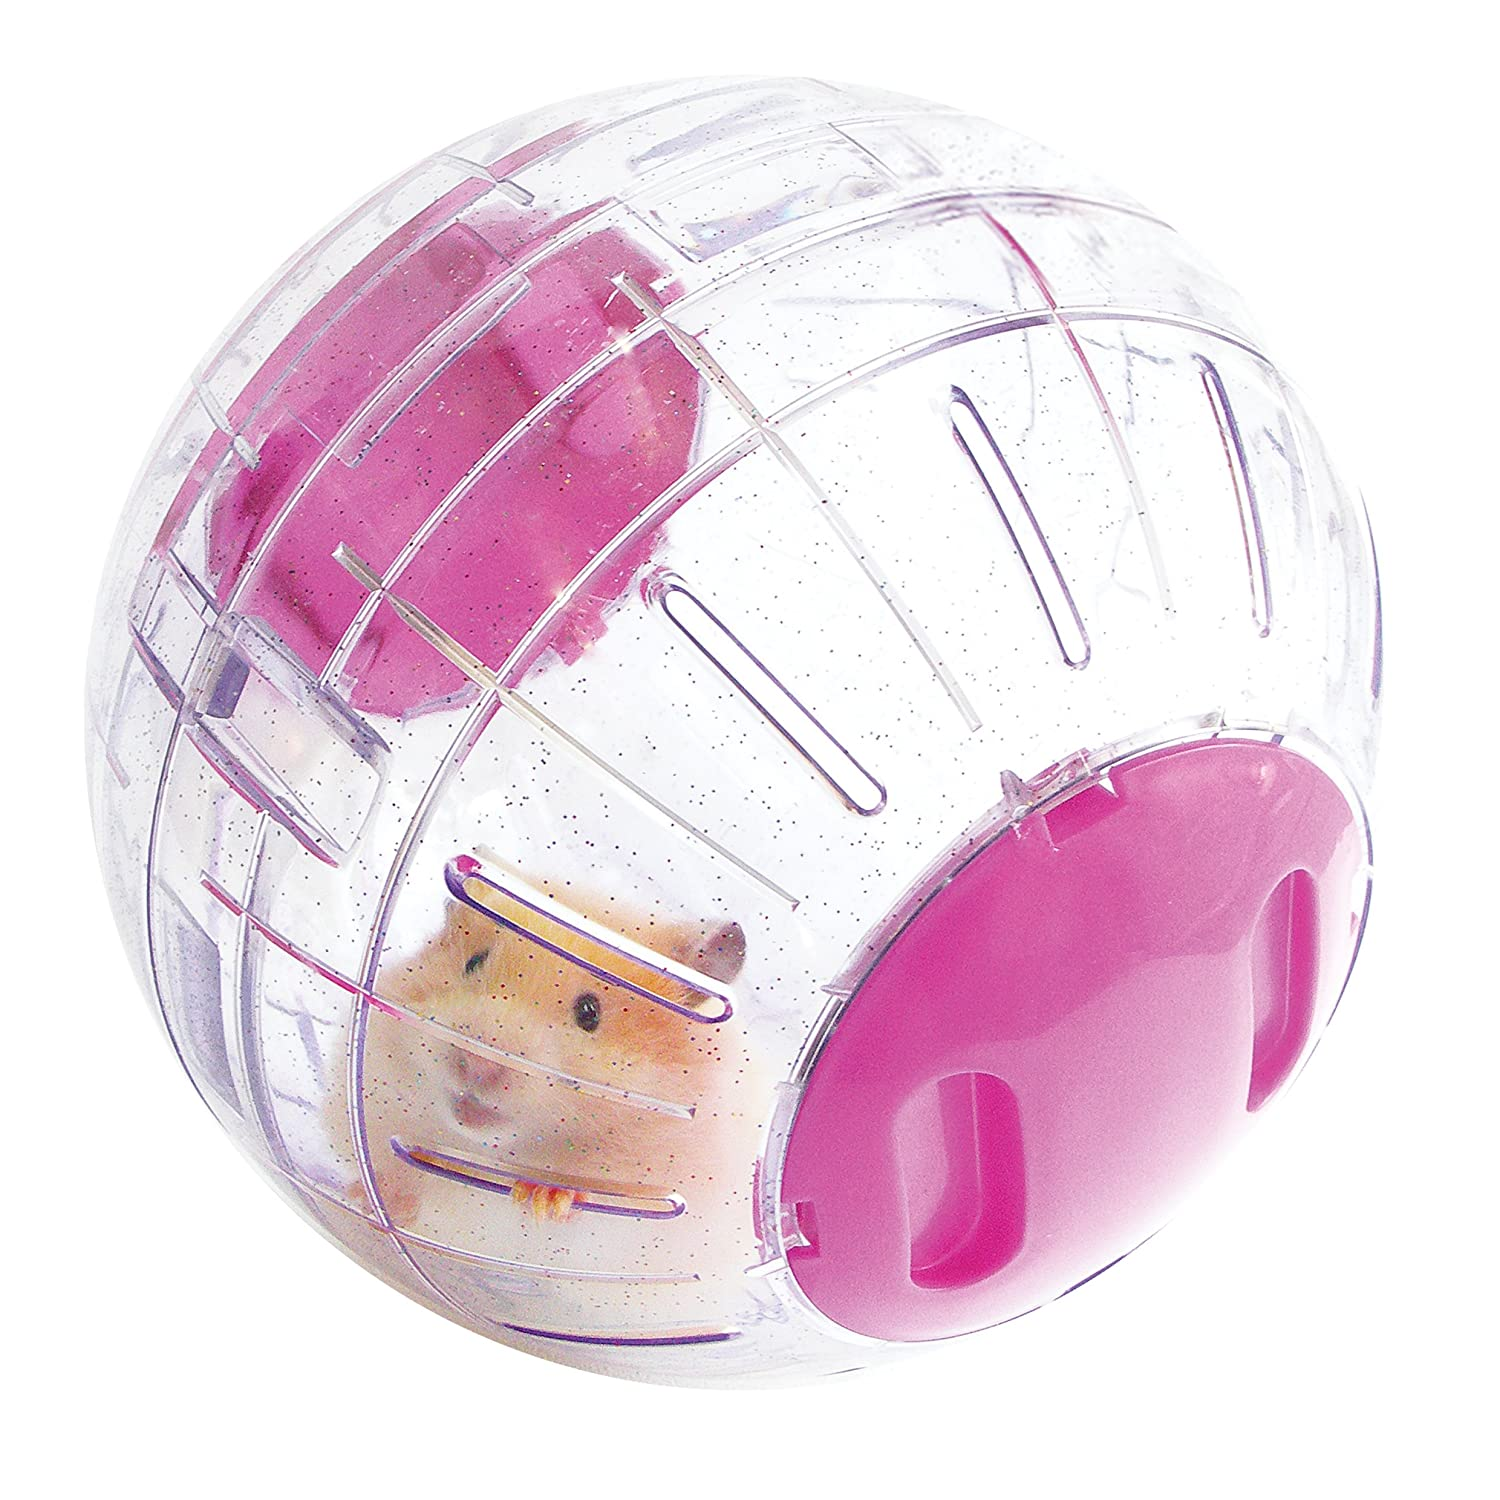 hamster ball free download